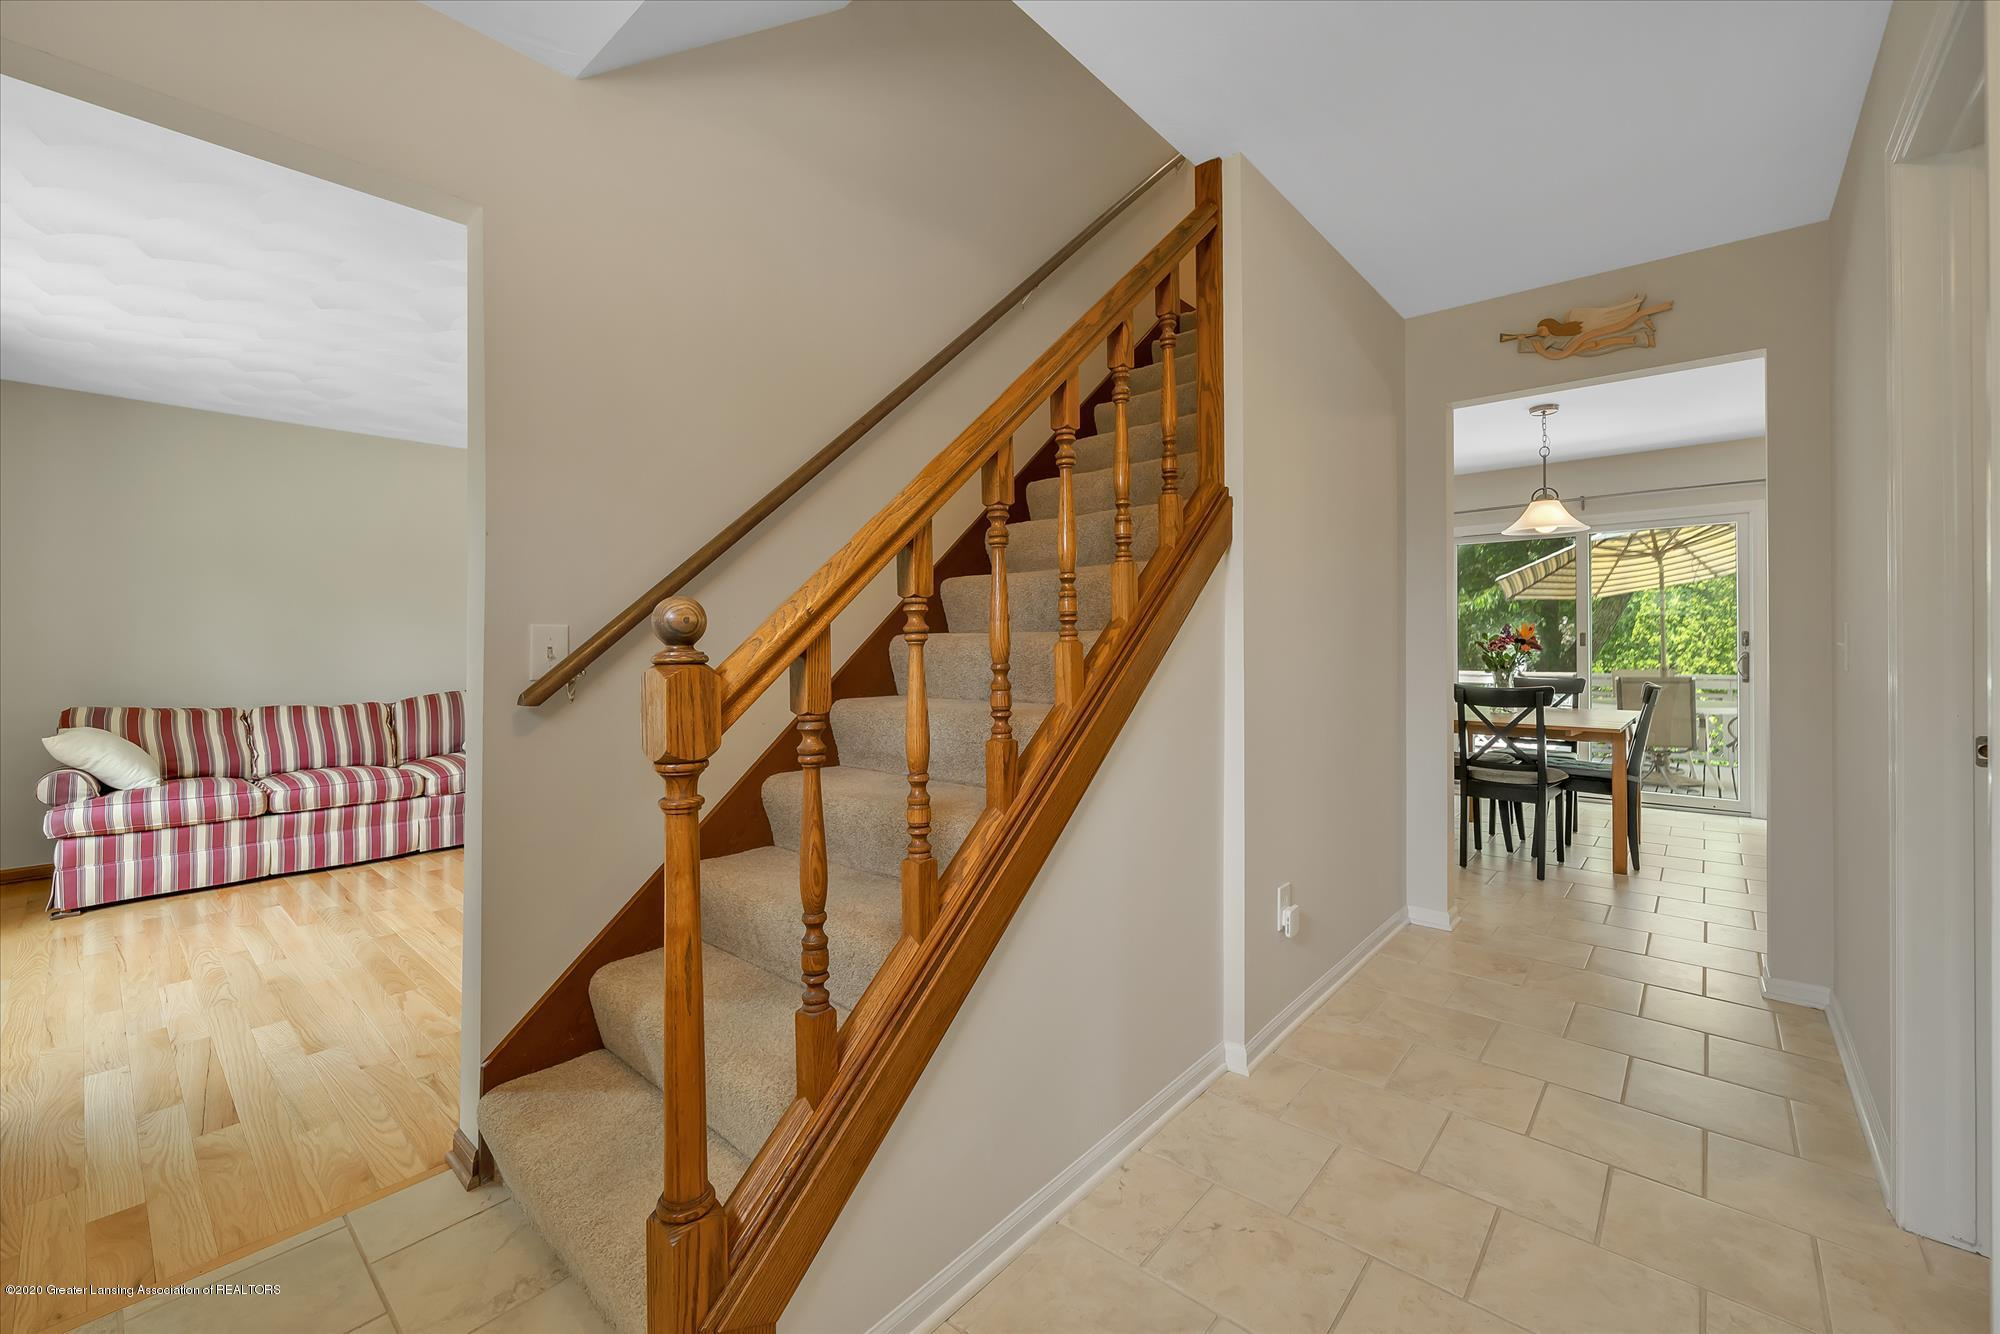 1606 Birchwood Dr - Foyer view to staircase - 4